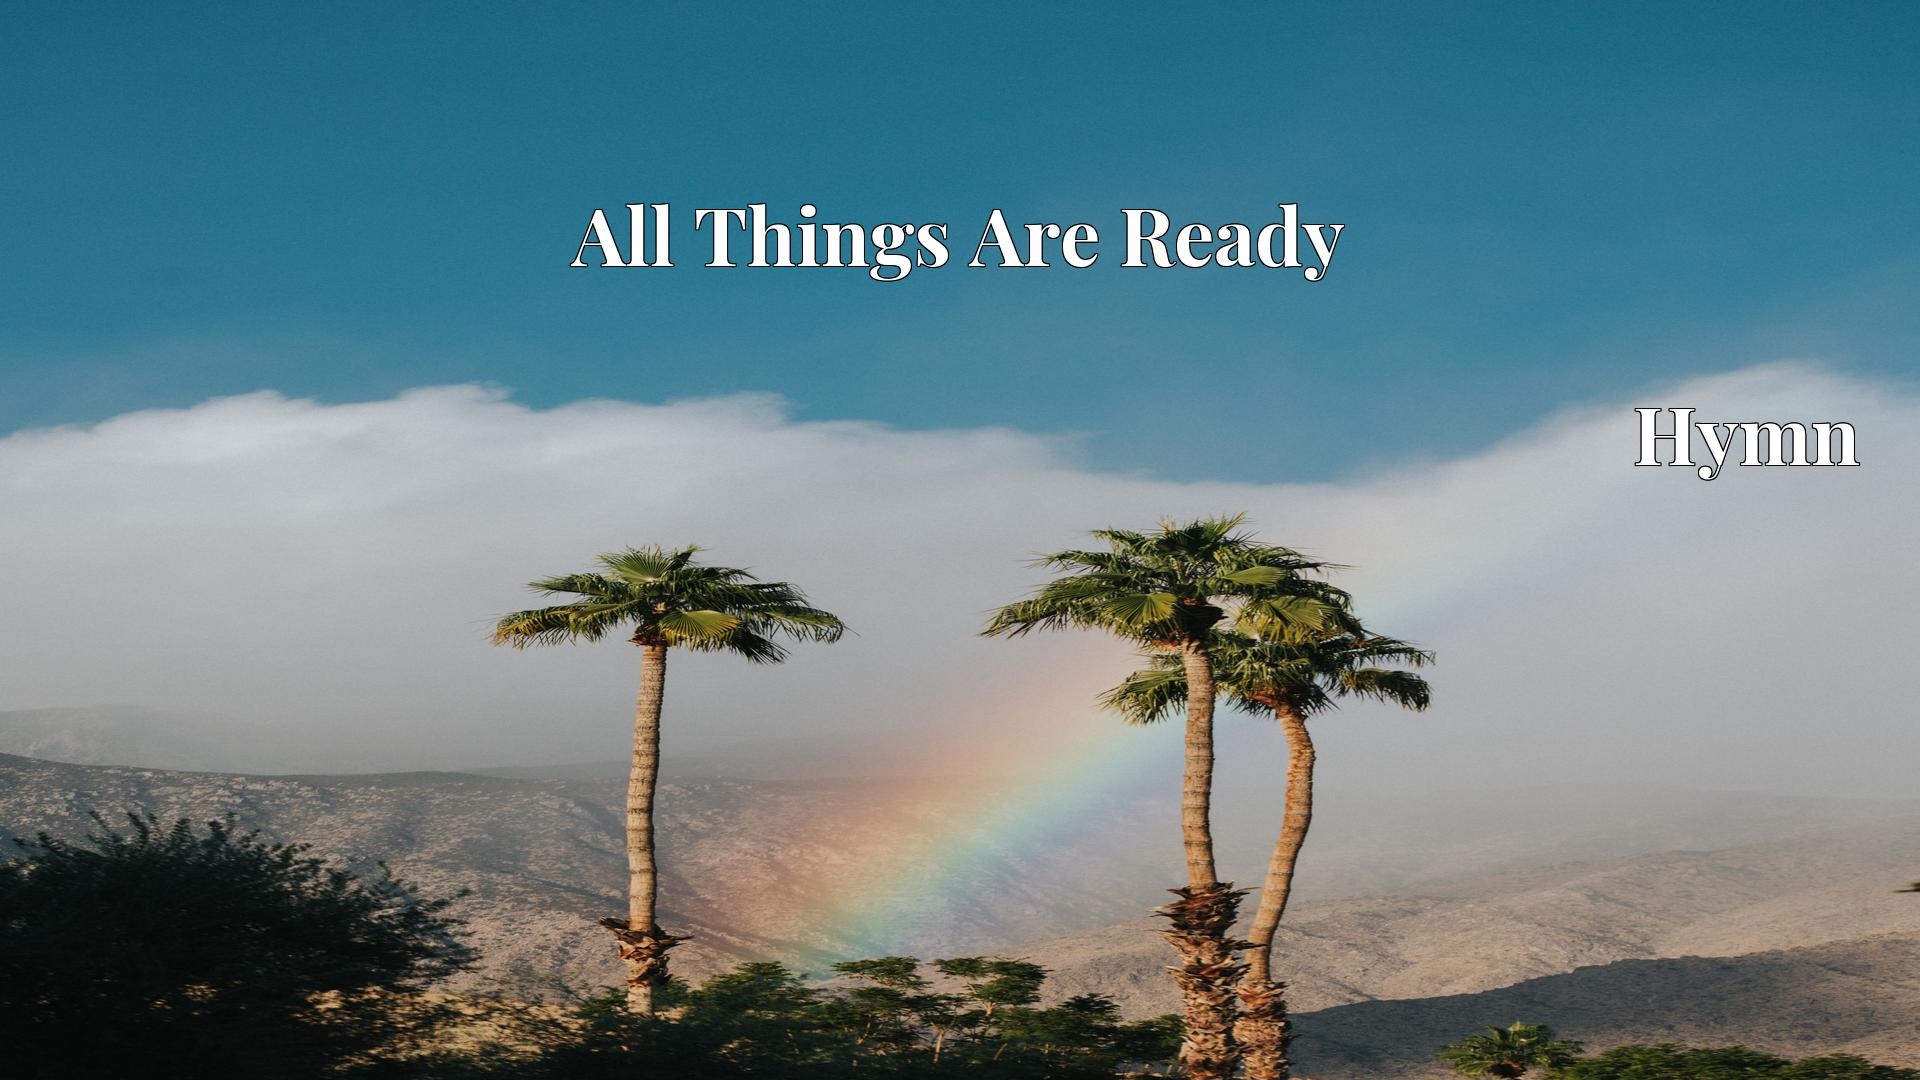 All Things Are Ready - Hymn